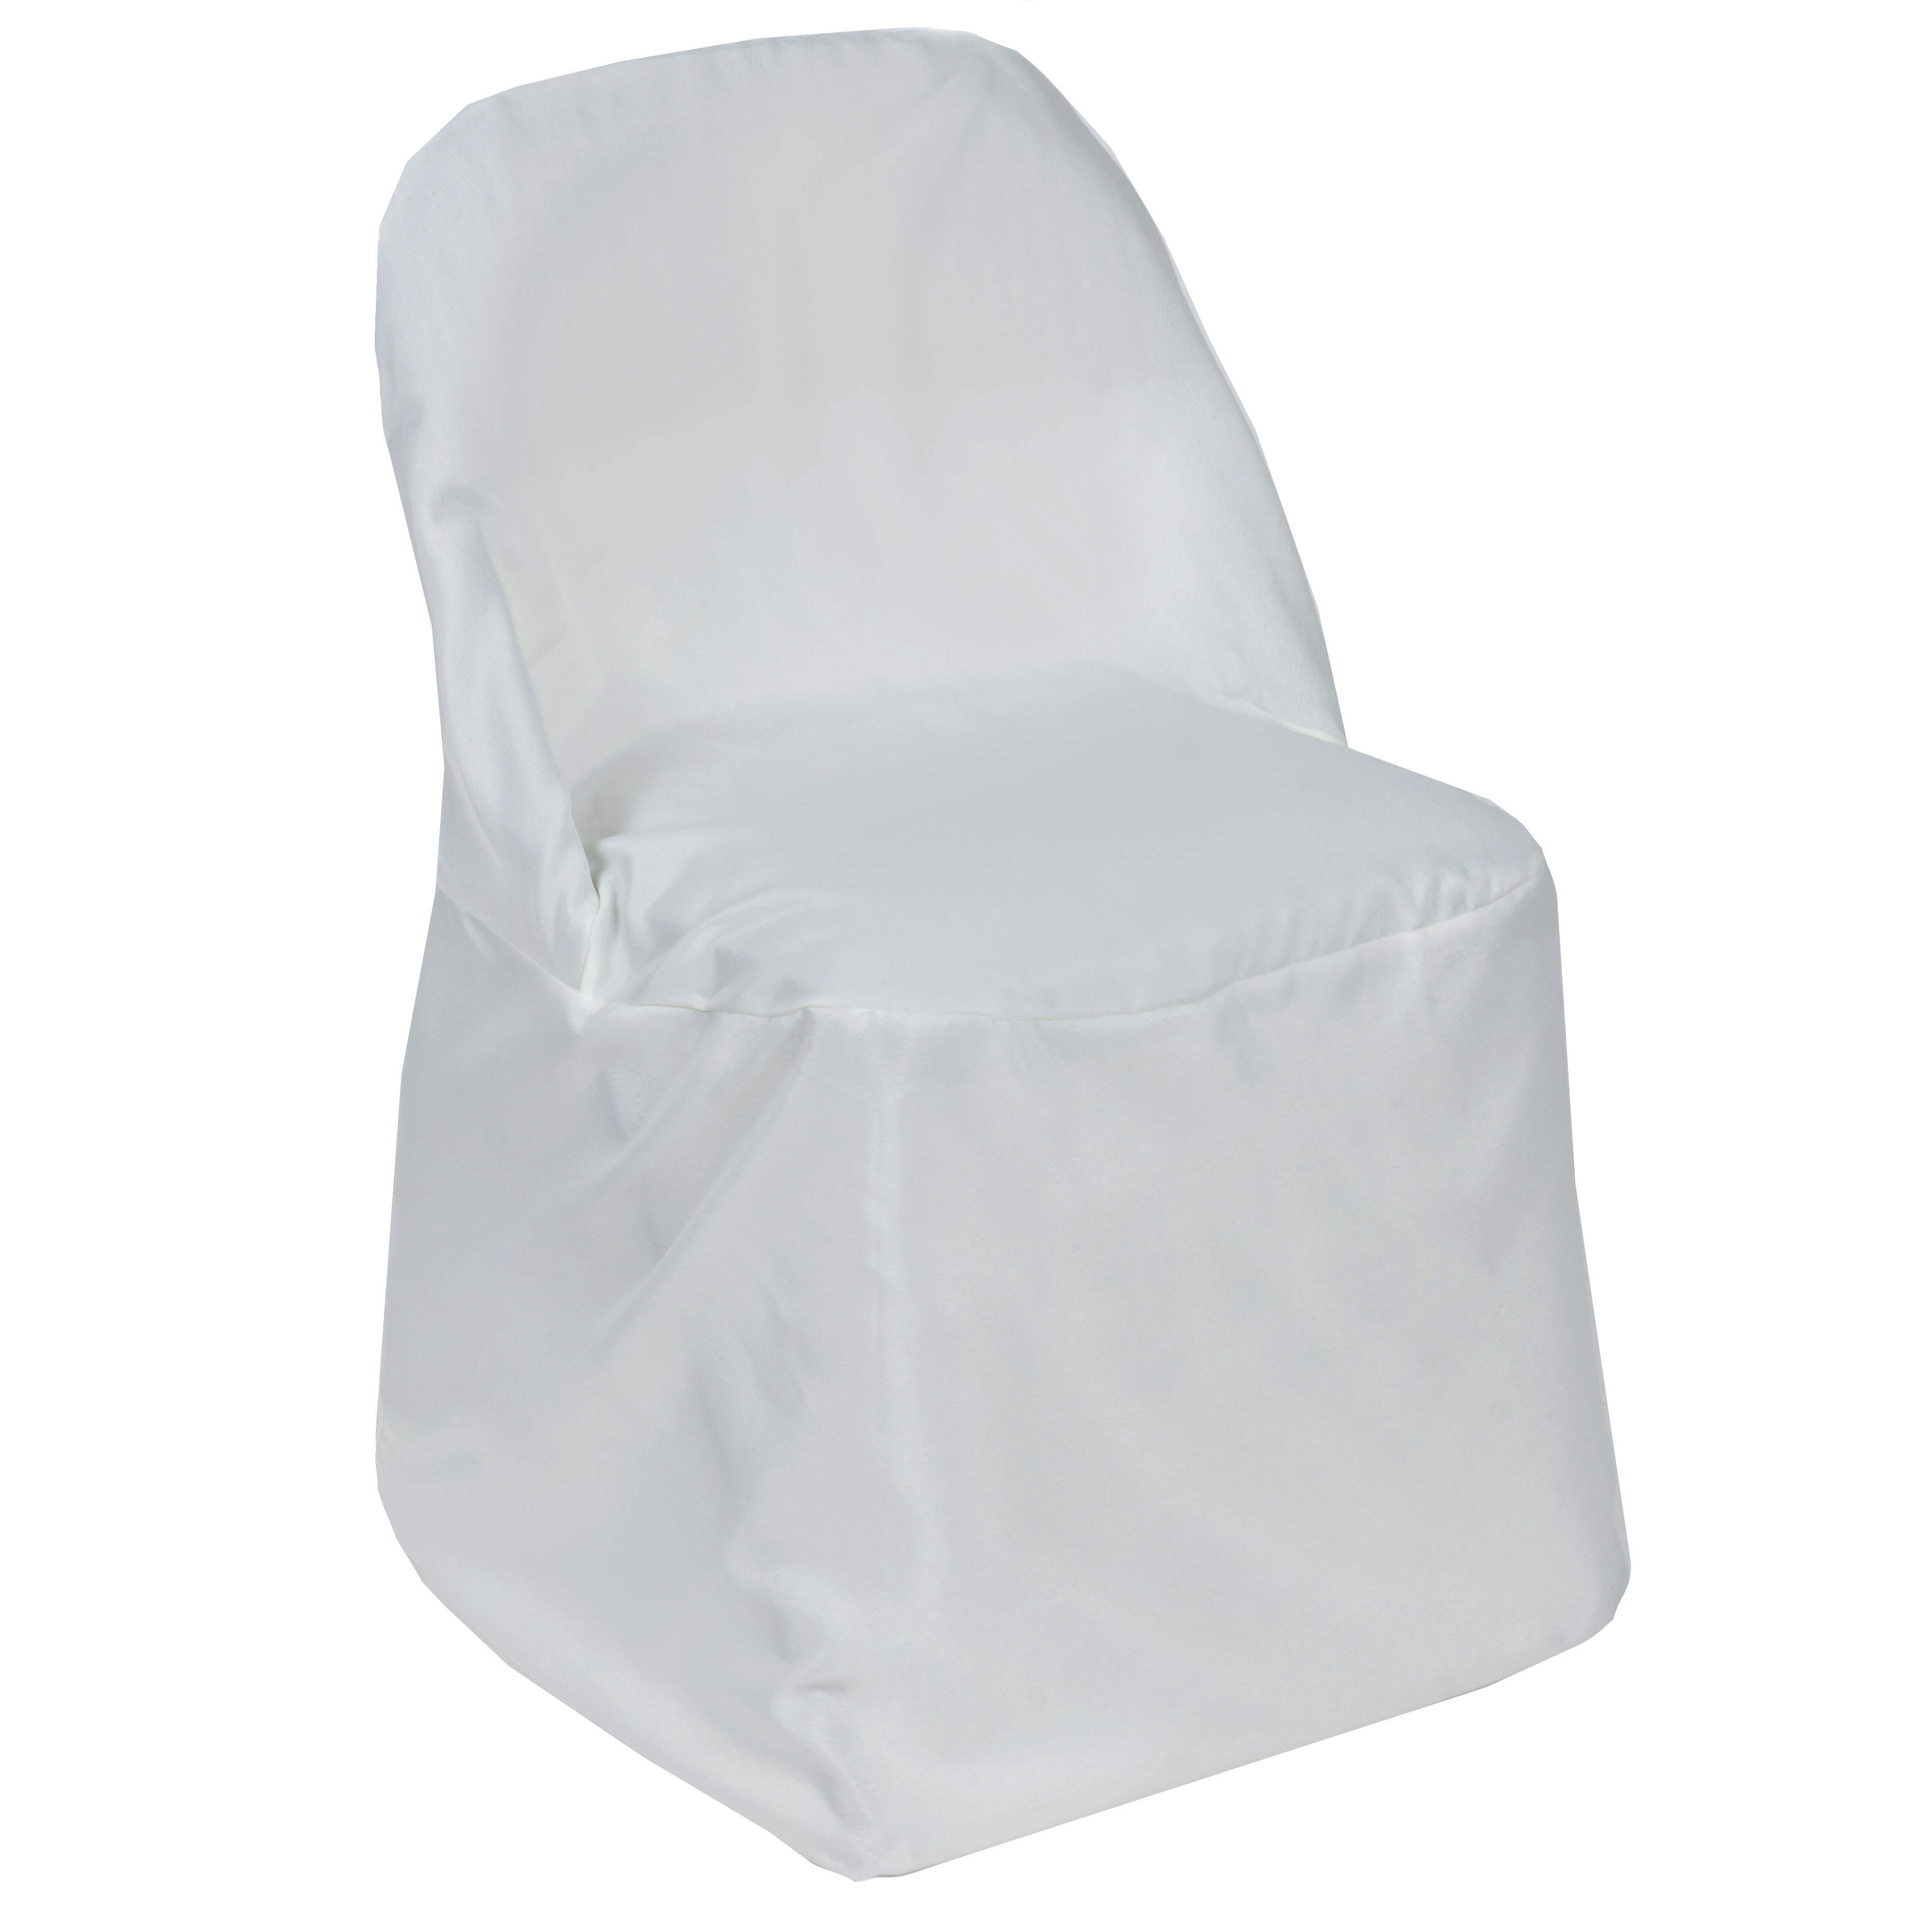 50 FOLDING Round Polyester Fabric CHAIR COVERS Wedding Party Wholesale Suppli